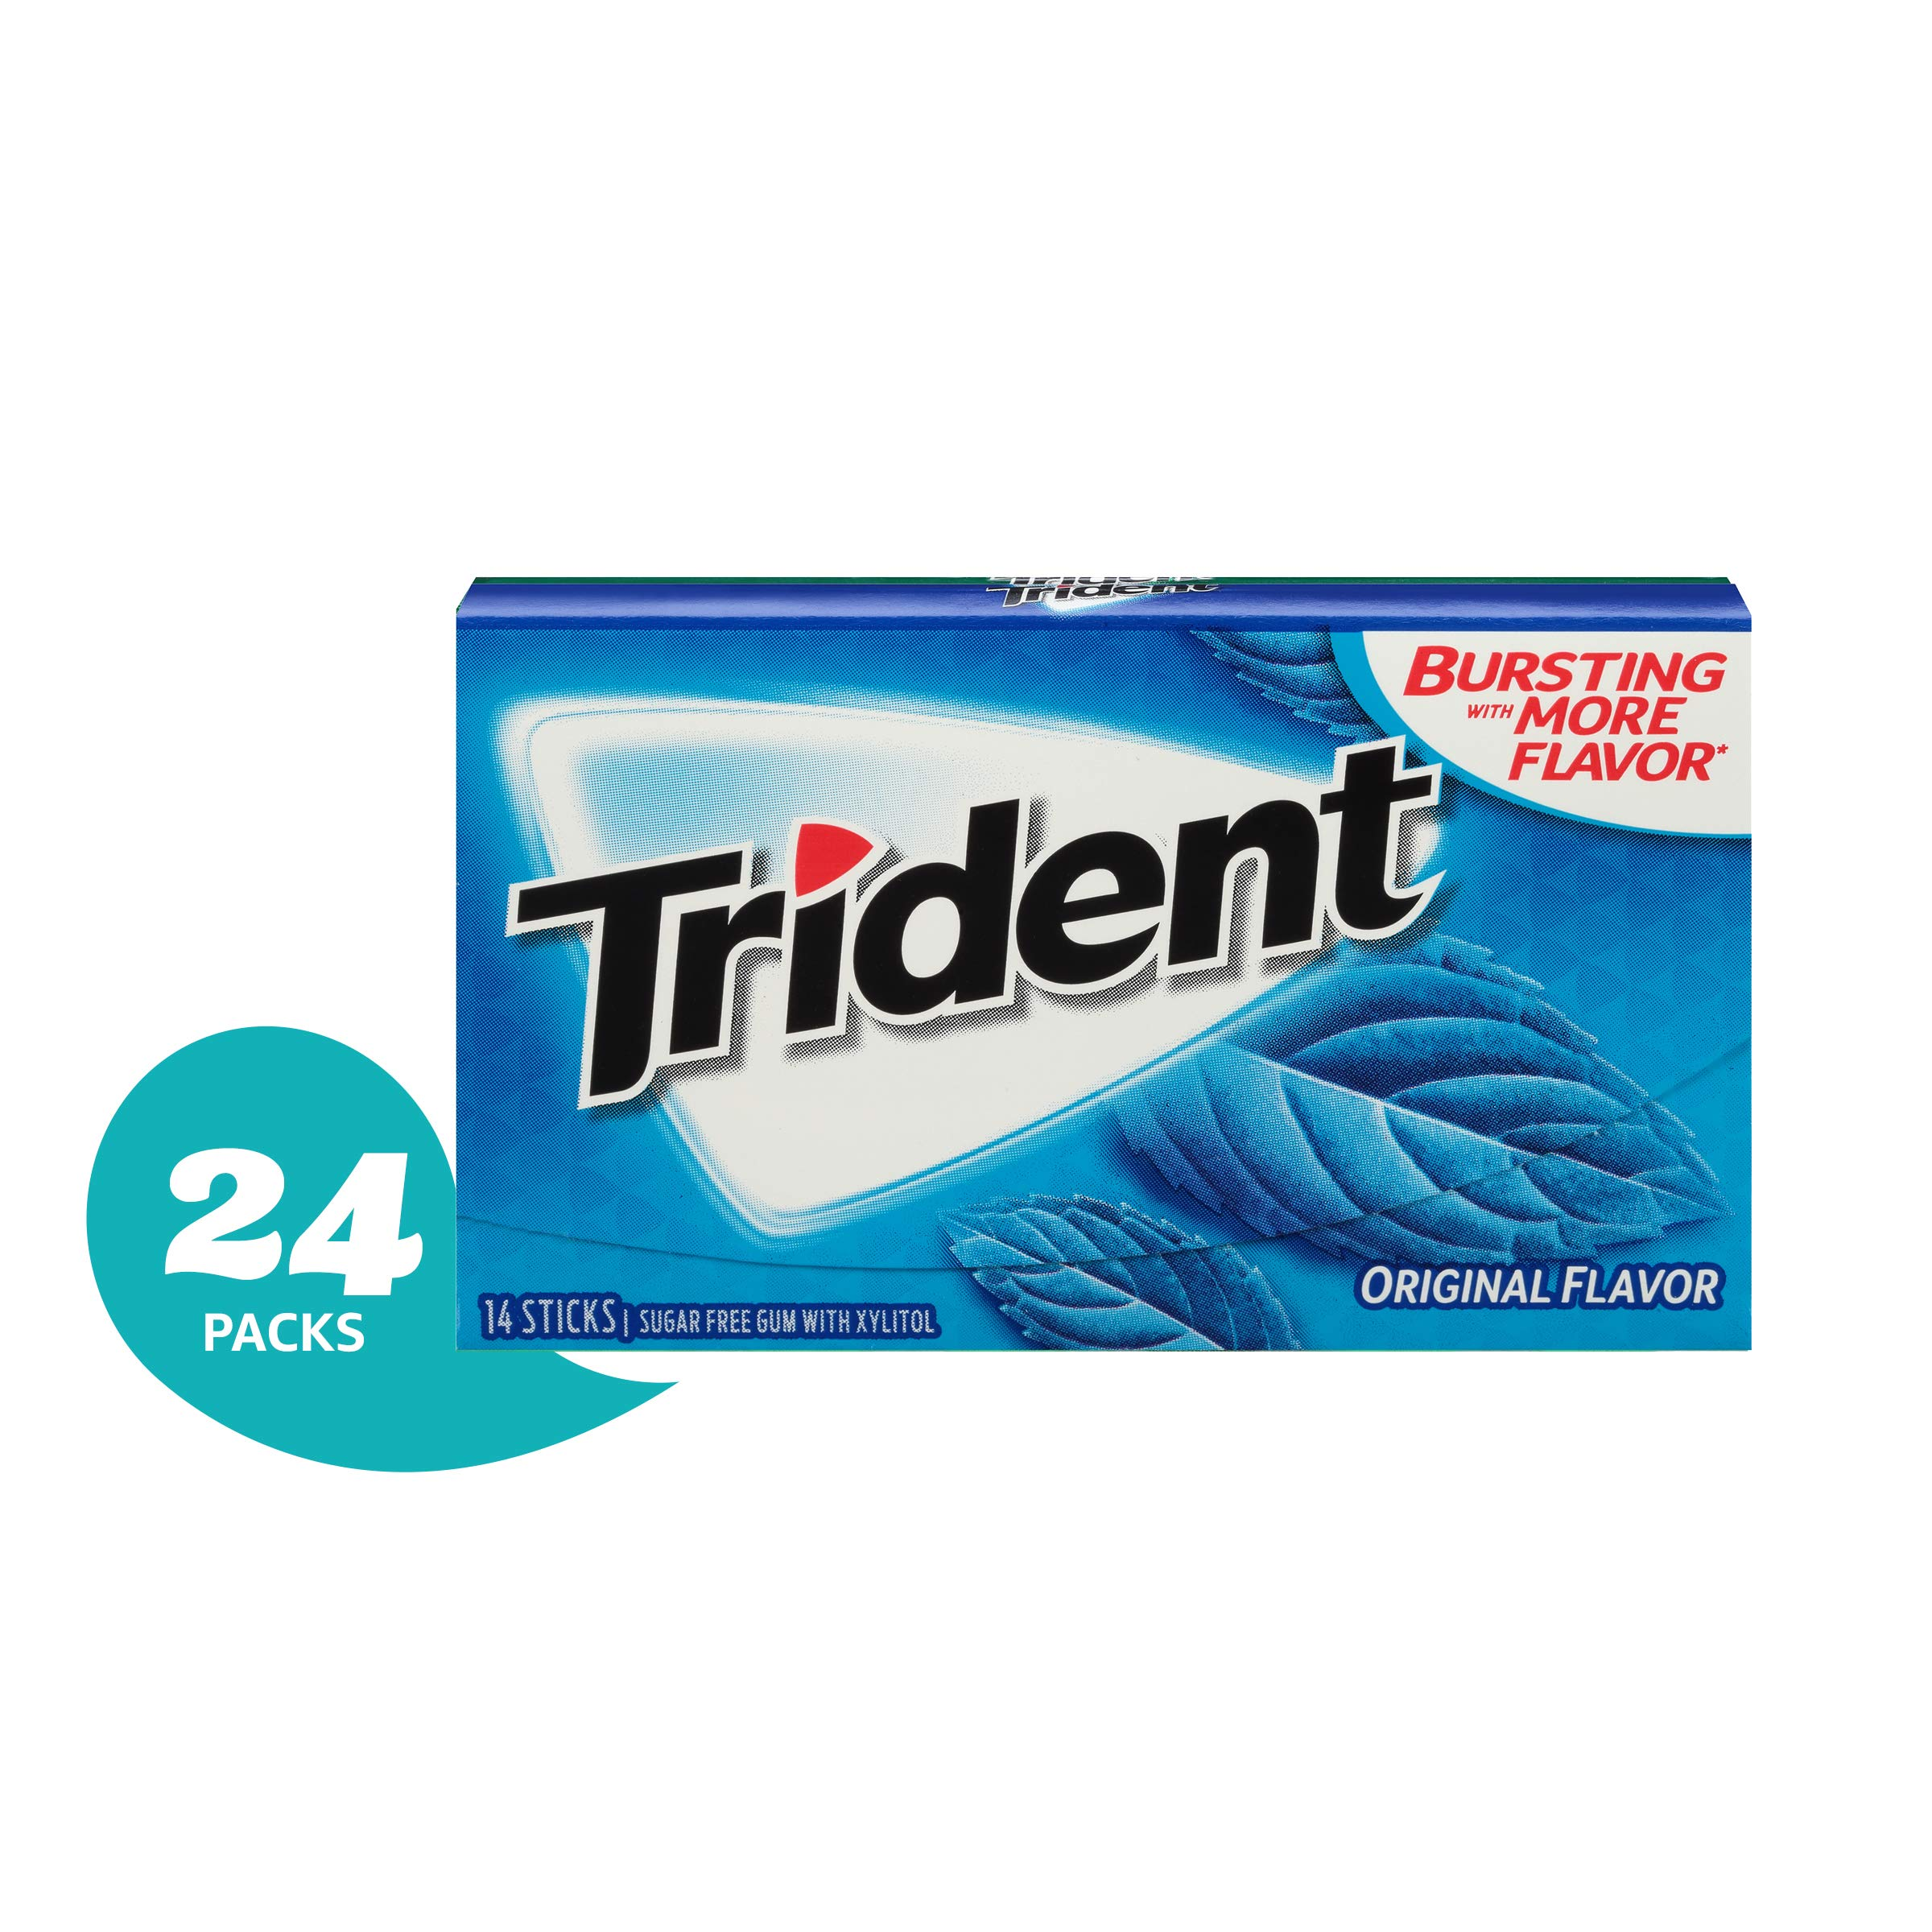 Trident Sugar Free Gum Original, 14 piece pack (24 Packs) by Trident (Image #1)